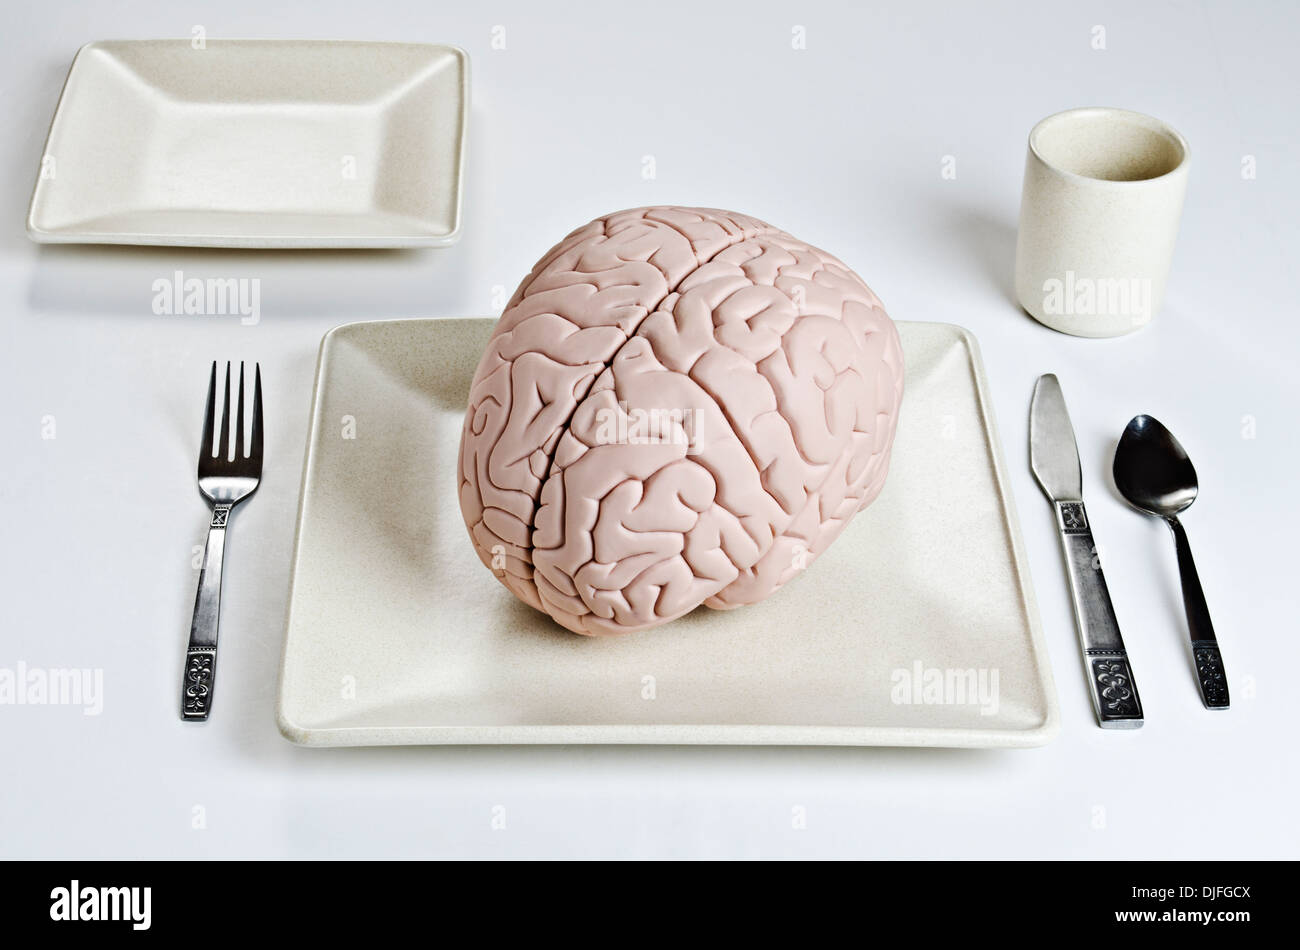 Human brain model on a dinner plate with silverware - Stock Image